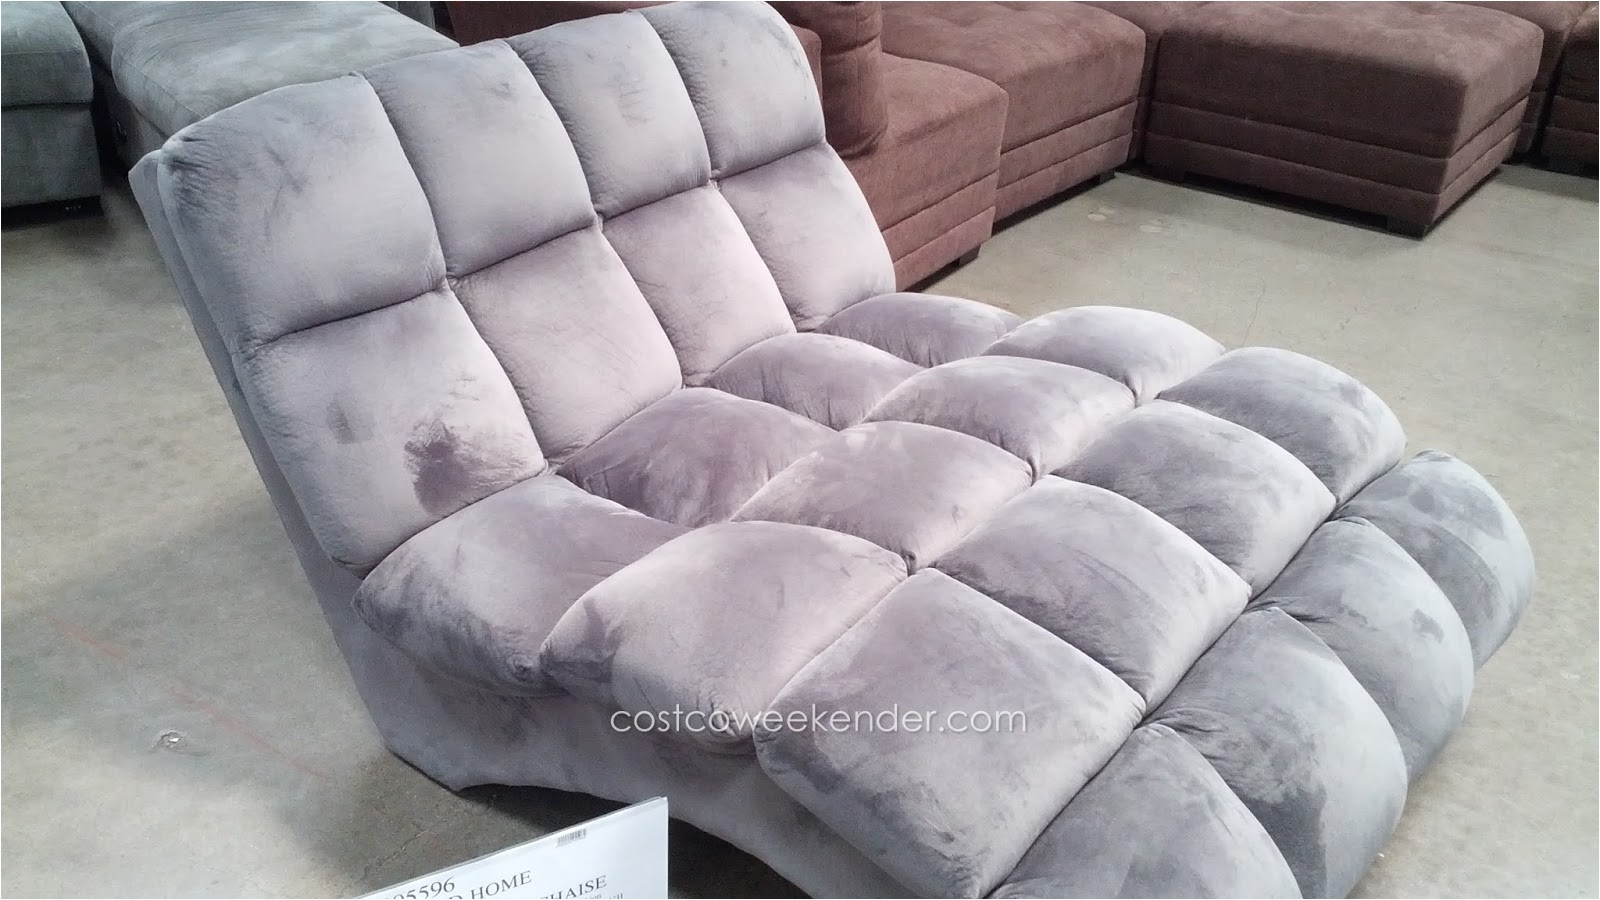 emerald home boylston double chaise lounge costco 905596